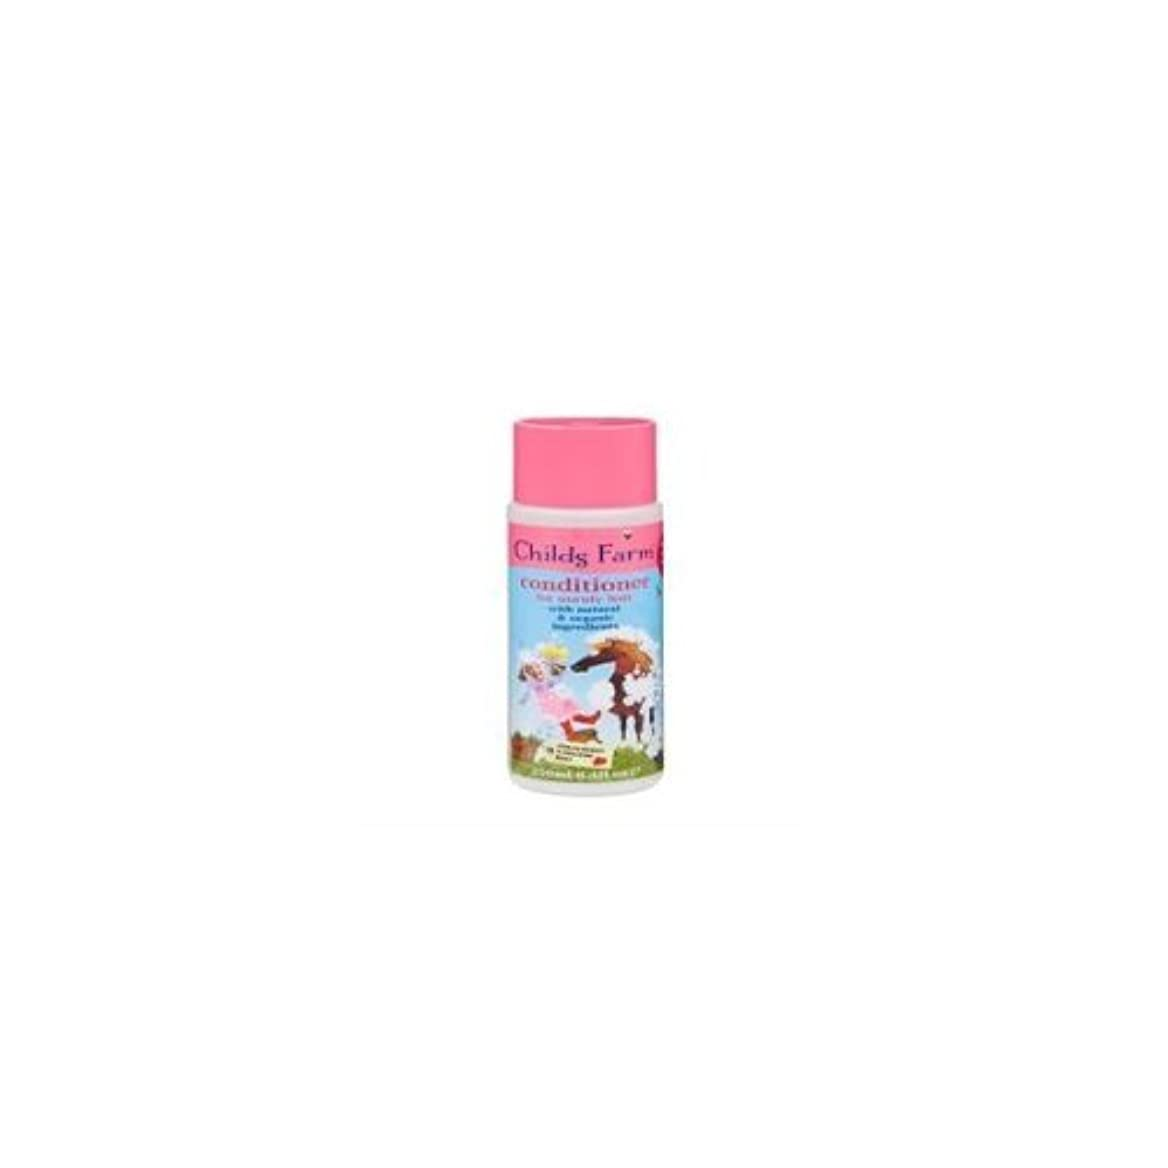 不明瞭甘くするすべてConditioner for Unruly Hair (250ml) x 2 Pack Deal Saver by Childs Farm [並行輸入品]